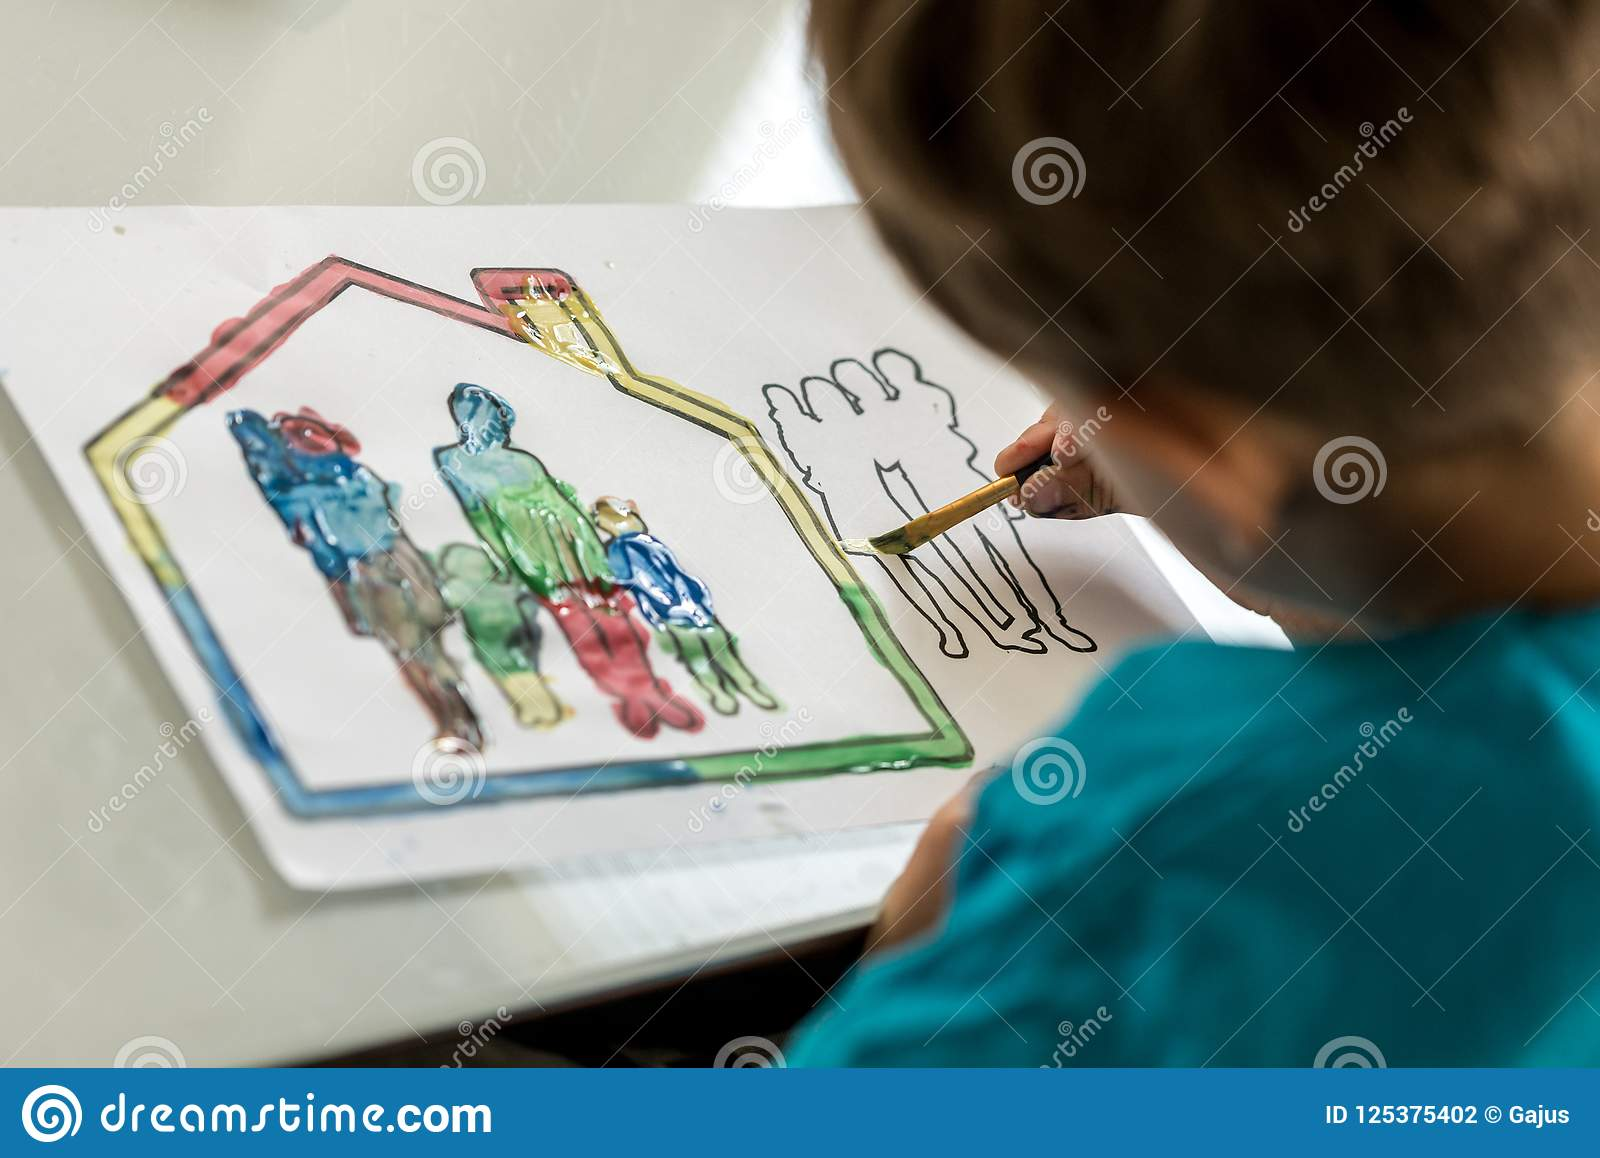 Child Colouring In A Sketch Of A Family Using A Paintbrush Stock ...